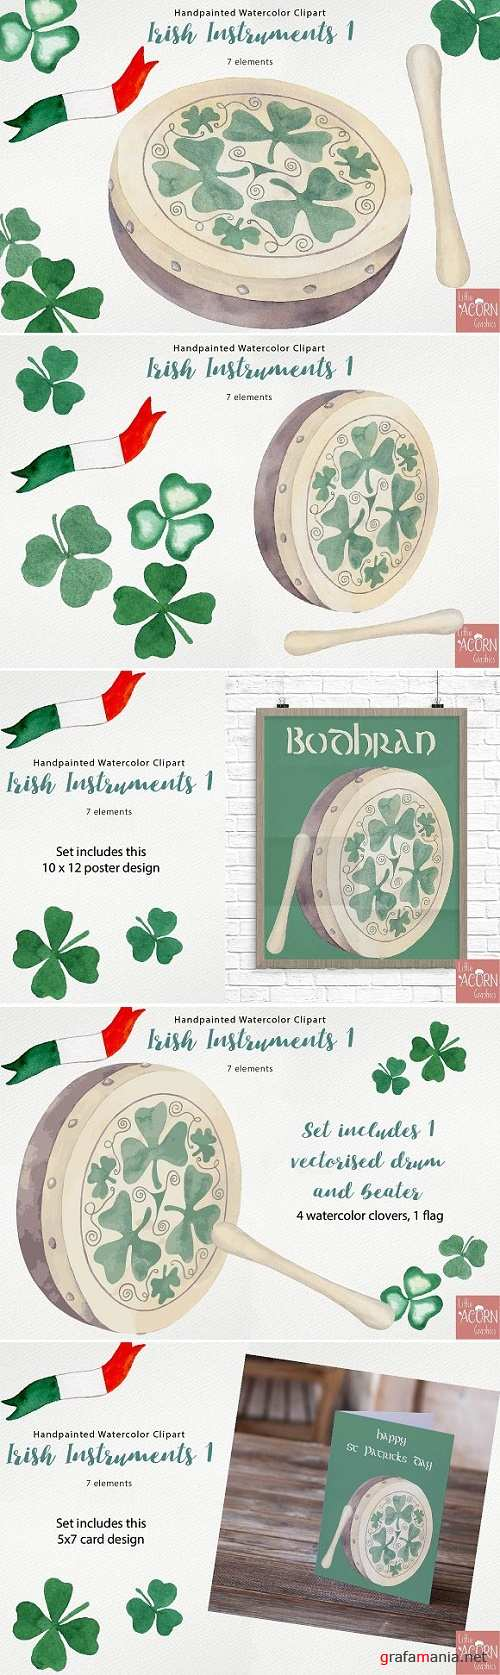 Watercolor Clipart Irish Instruments 2347269